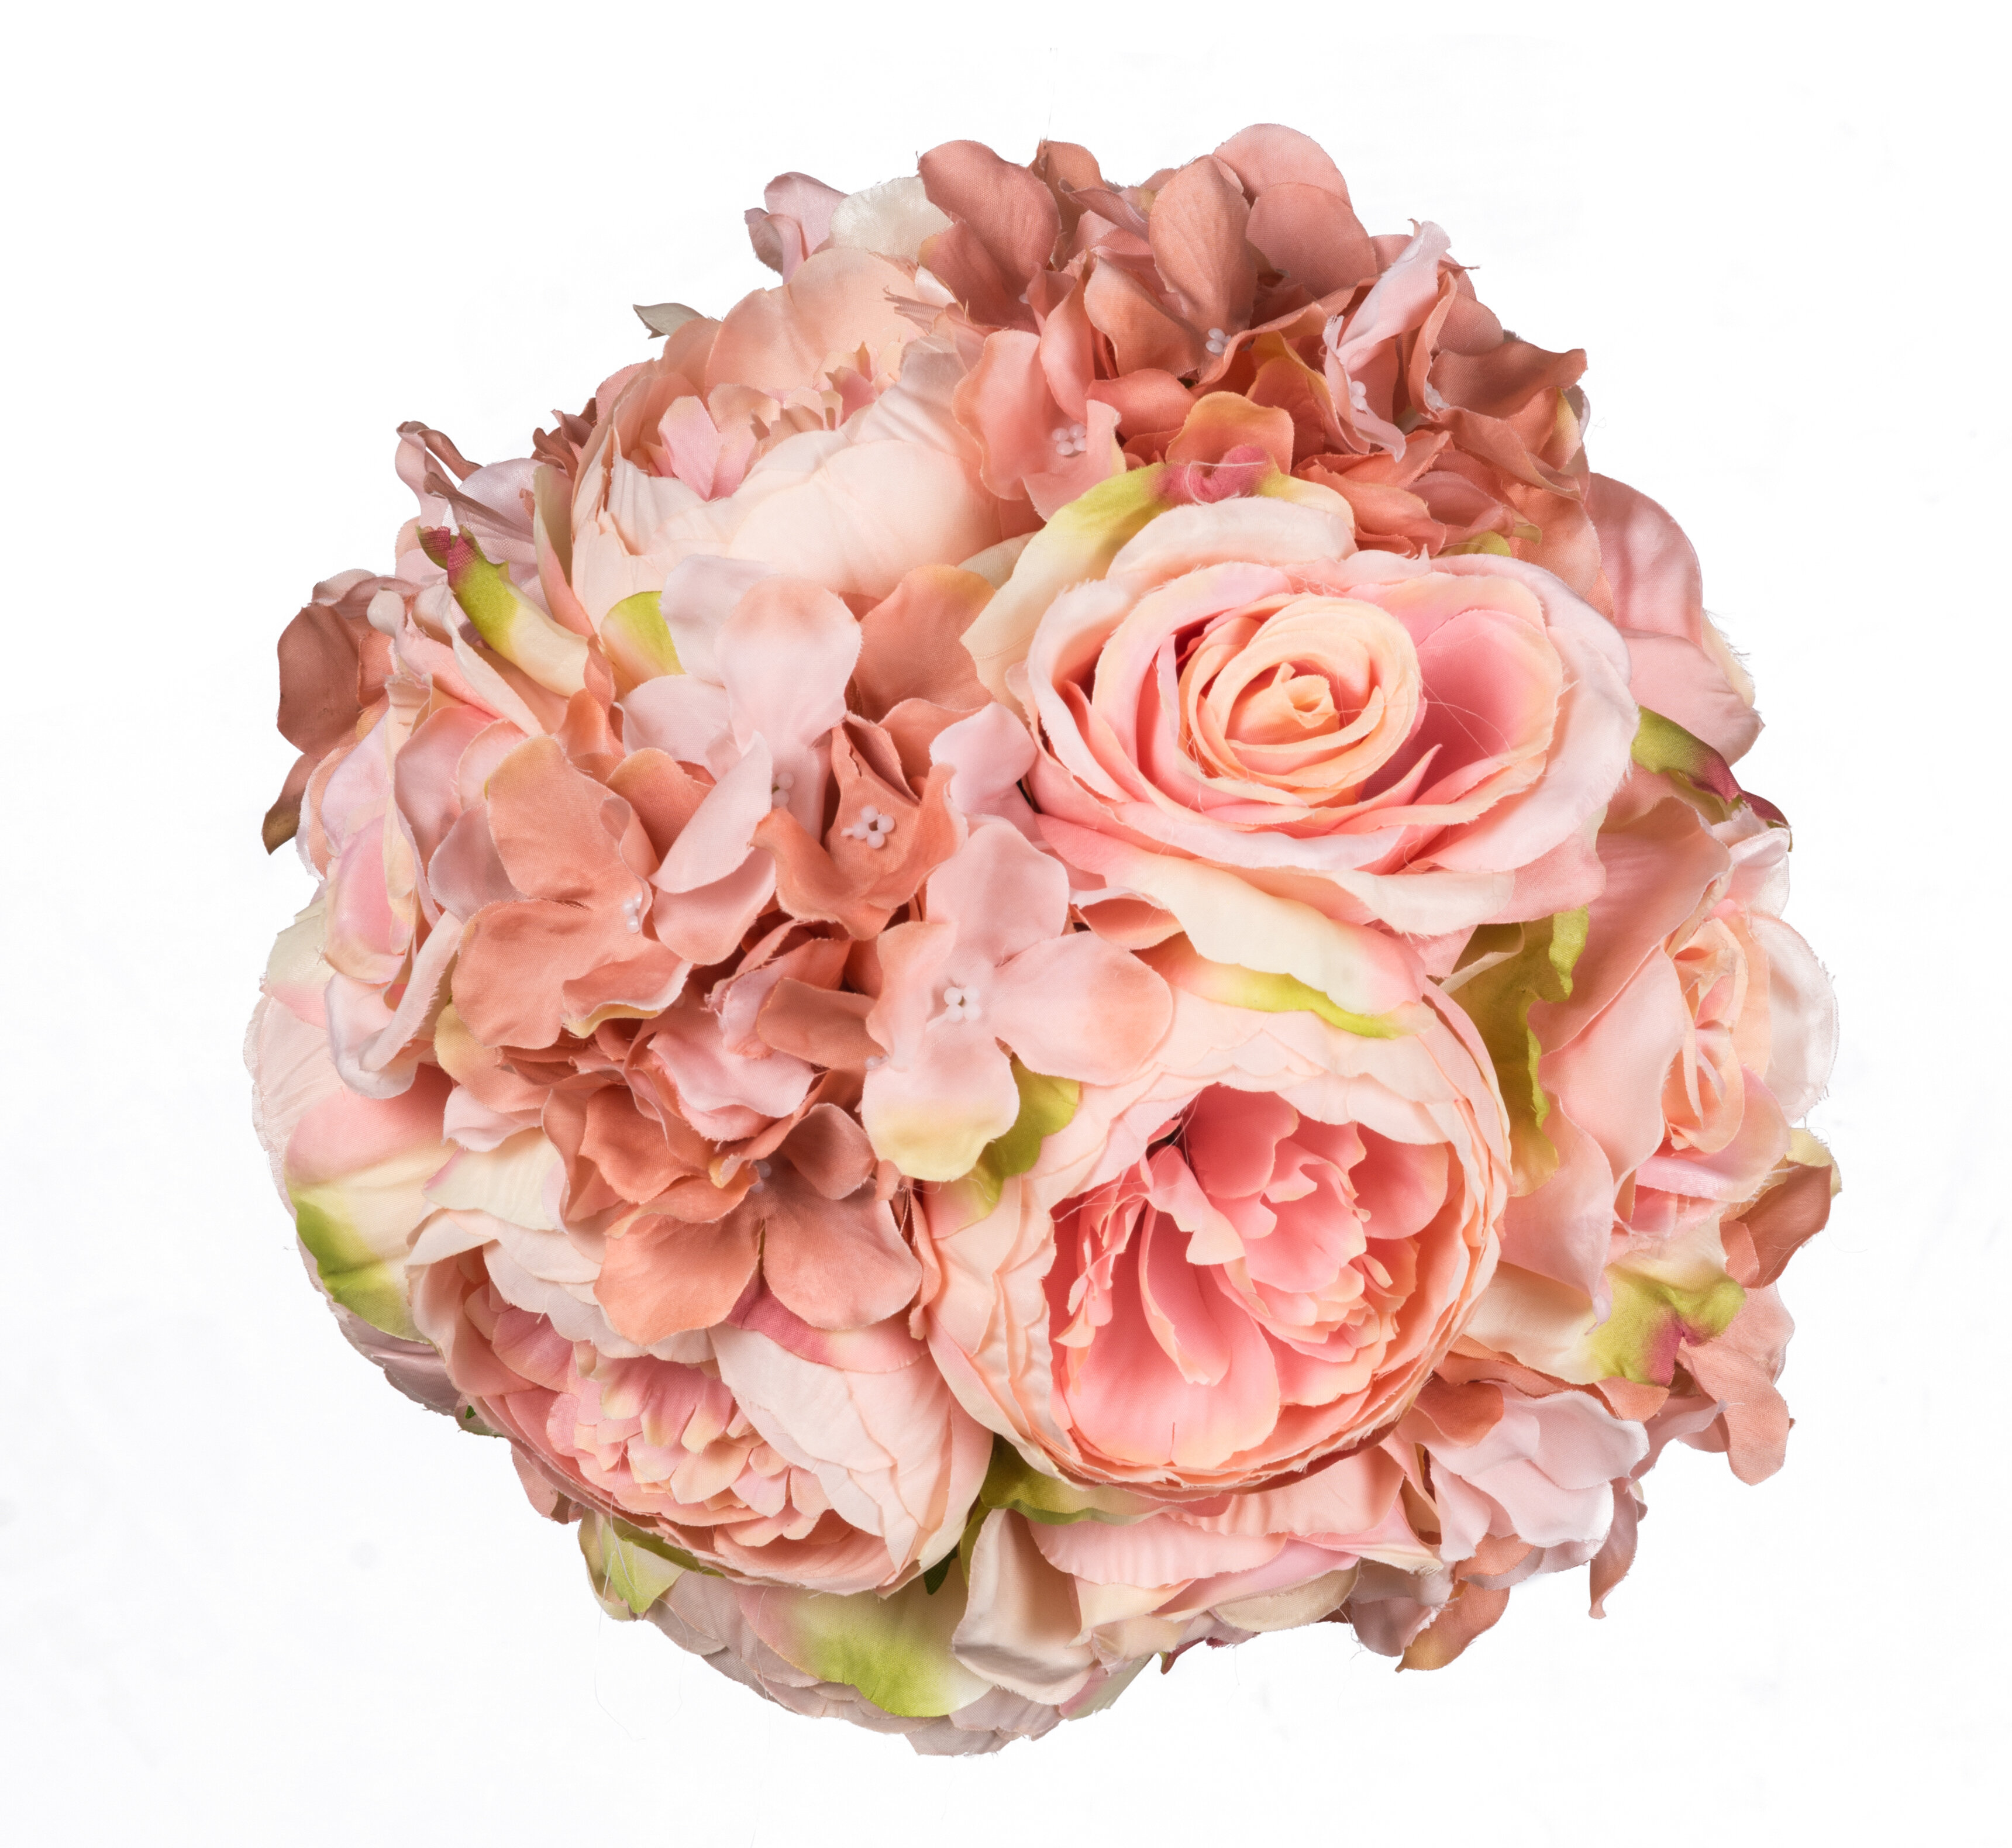 Ophelia Co Hydrangea Rose Ball Flower Wayfair